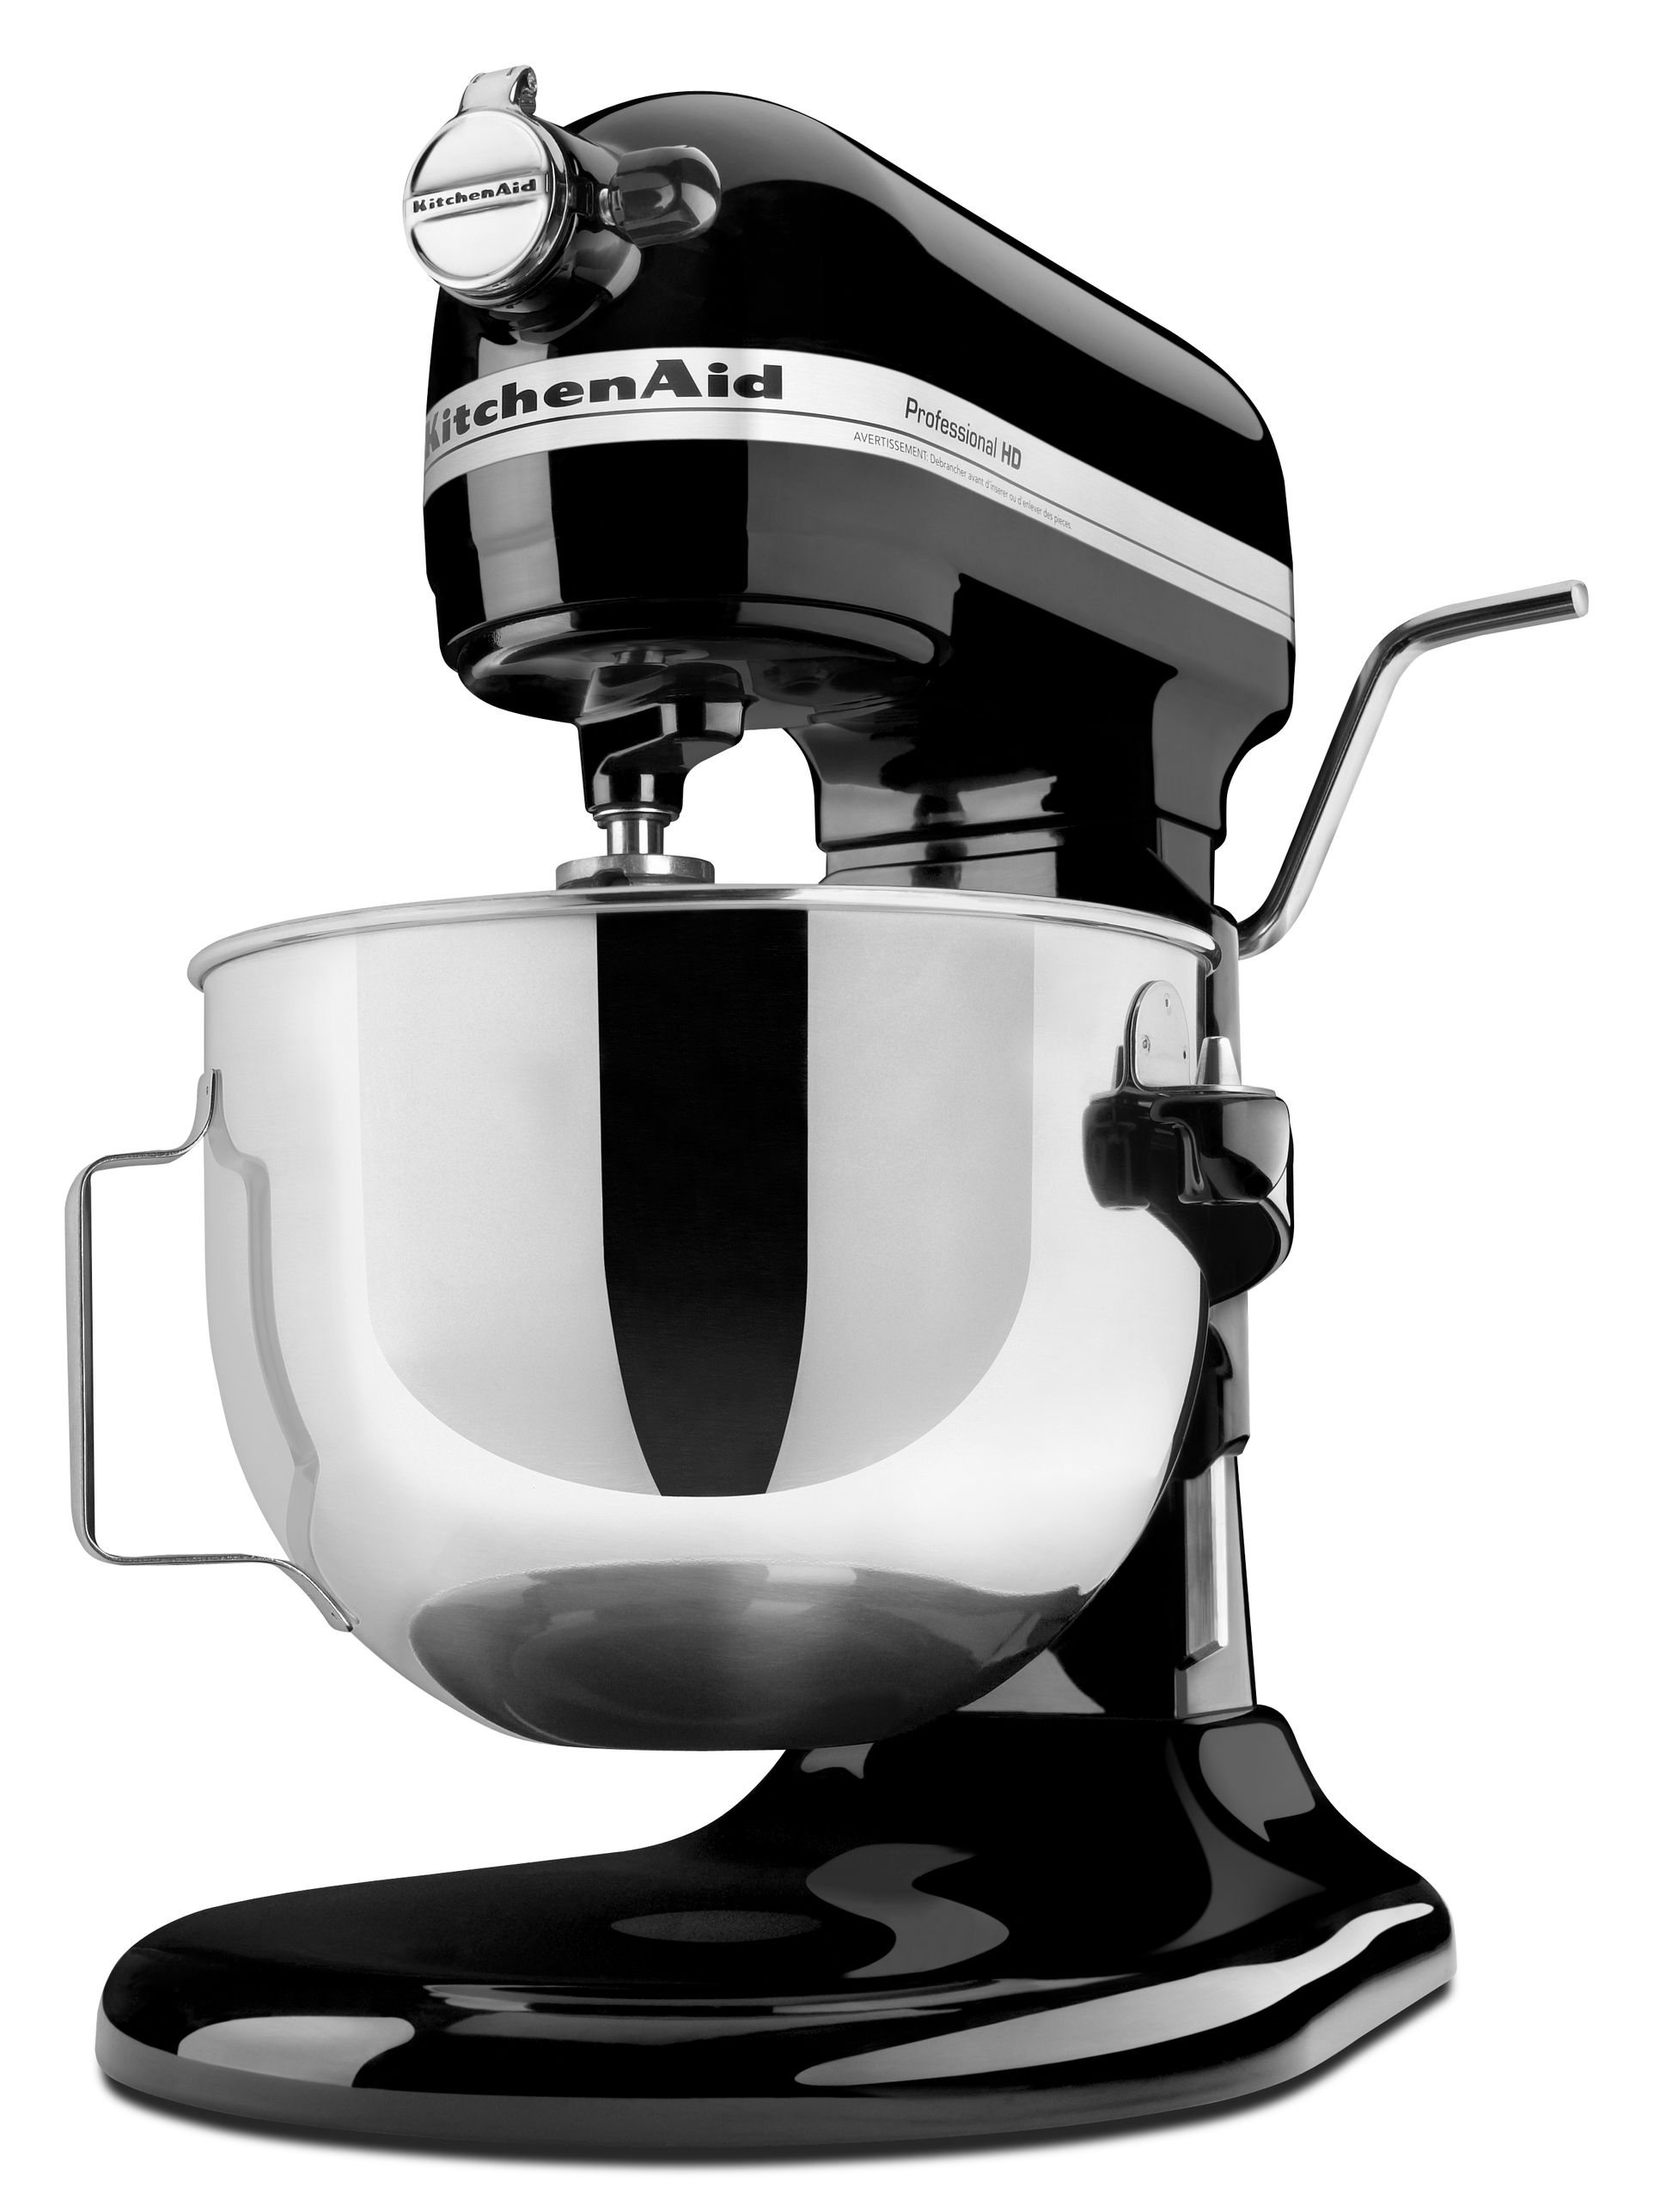 KitchenAid-Refurbished-Professional-HD-Series-Bowl-Lift-Stand-Mixer-RKG25H0X thumbnail 16